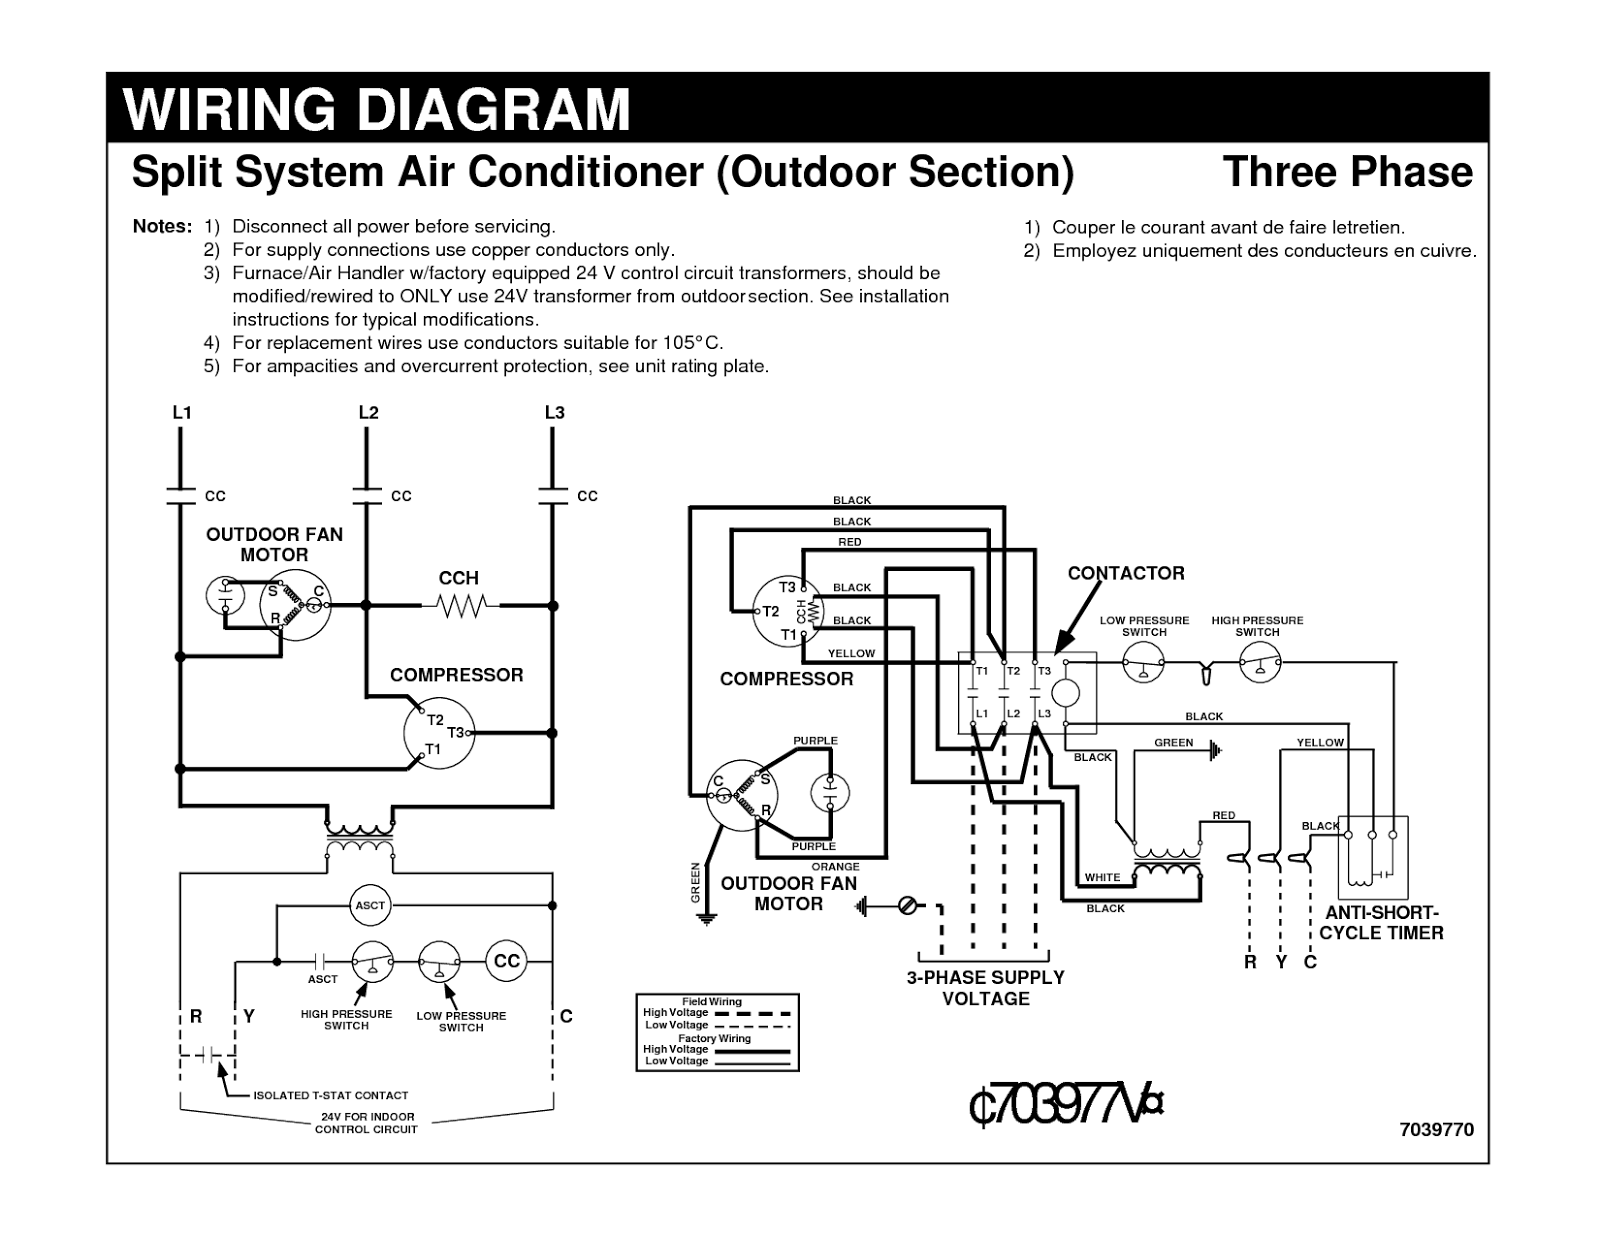 Basic Hvac Wiring Archive Of Automotive Diagram Ford Upfitter Under Hood Diagrams Layout U2022 Rh Laurafinlay Co Uk Electrical